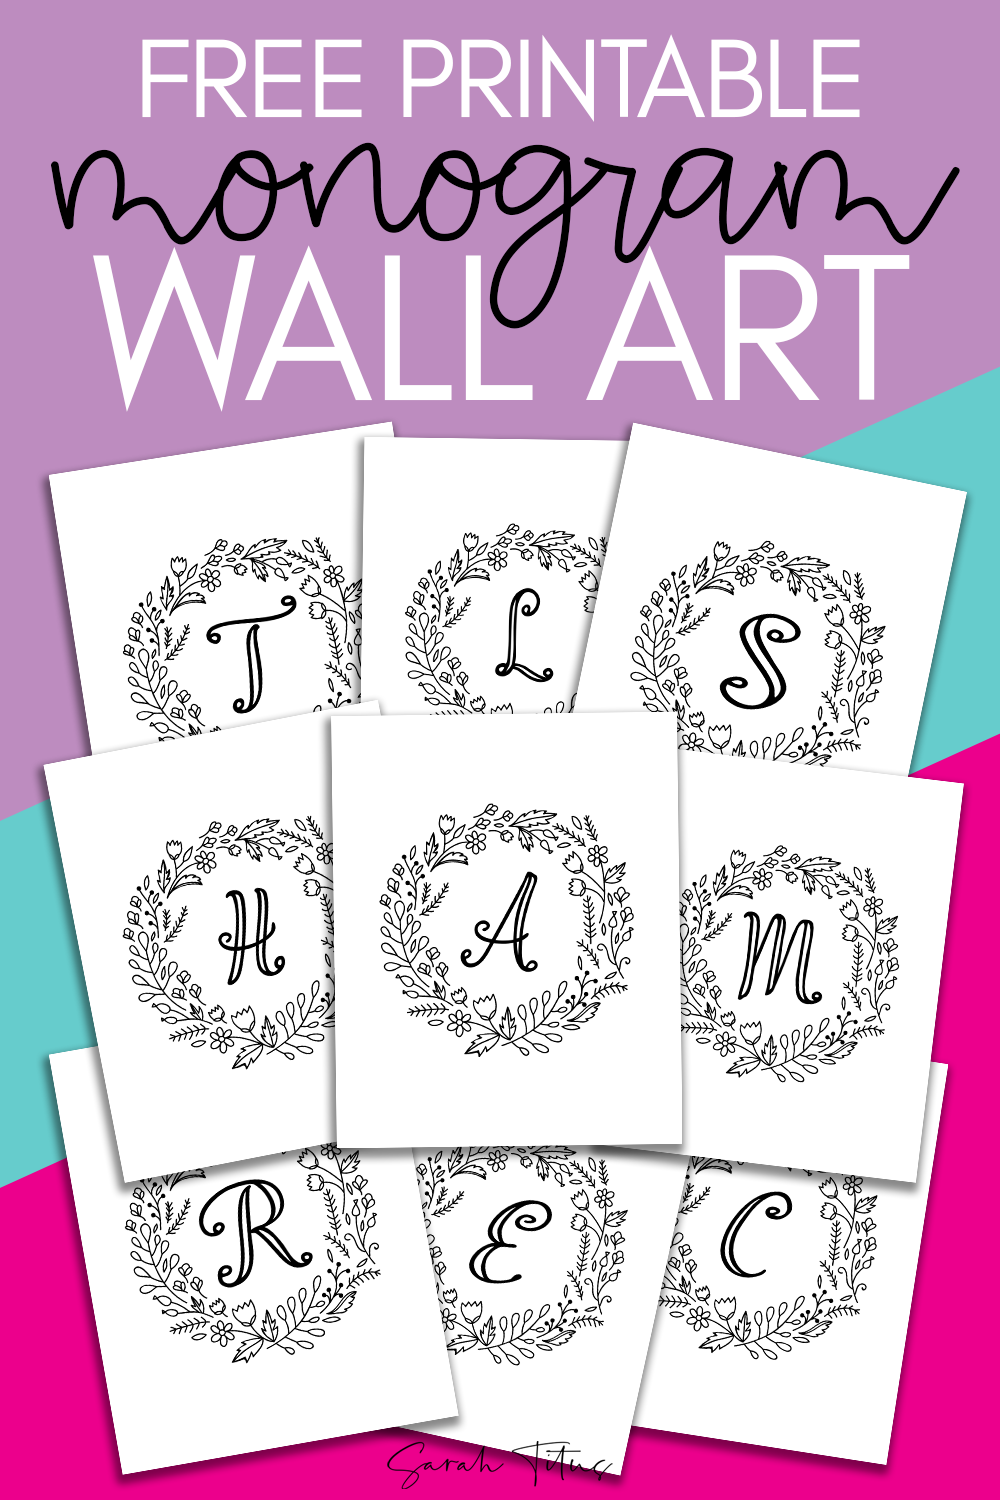 picture regarding Free Printable Art identified as Cost-free Printable Monogram Wall Artwork - Colorable! - Sarah Titus